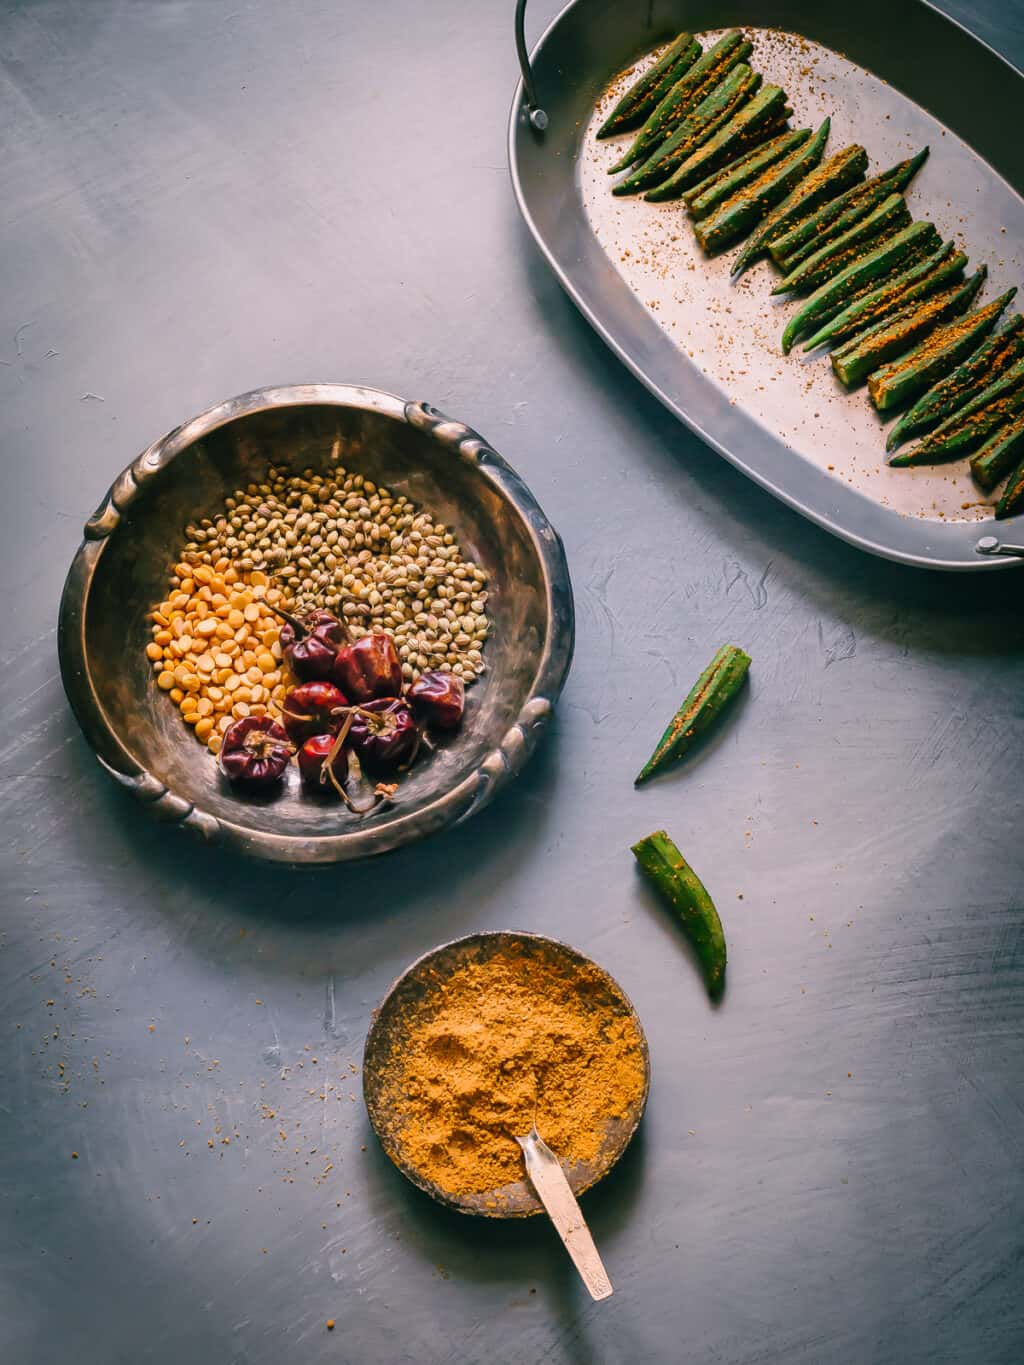 Prep shot of stuffed okra with spice mix made from dry red chillies, lentils and coriander seeds and peanuts (optional).